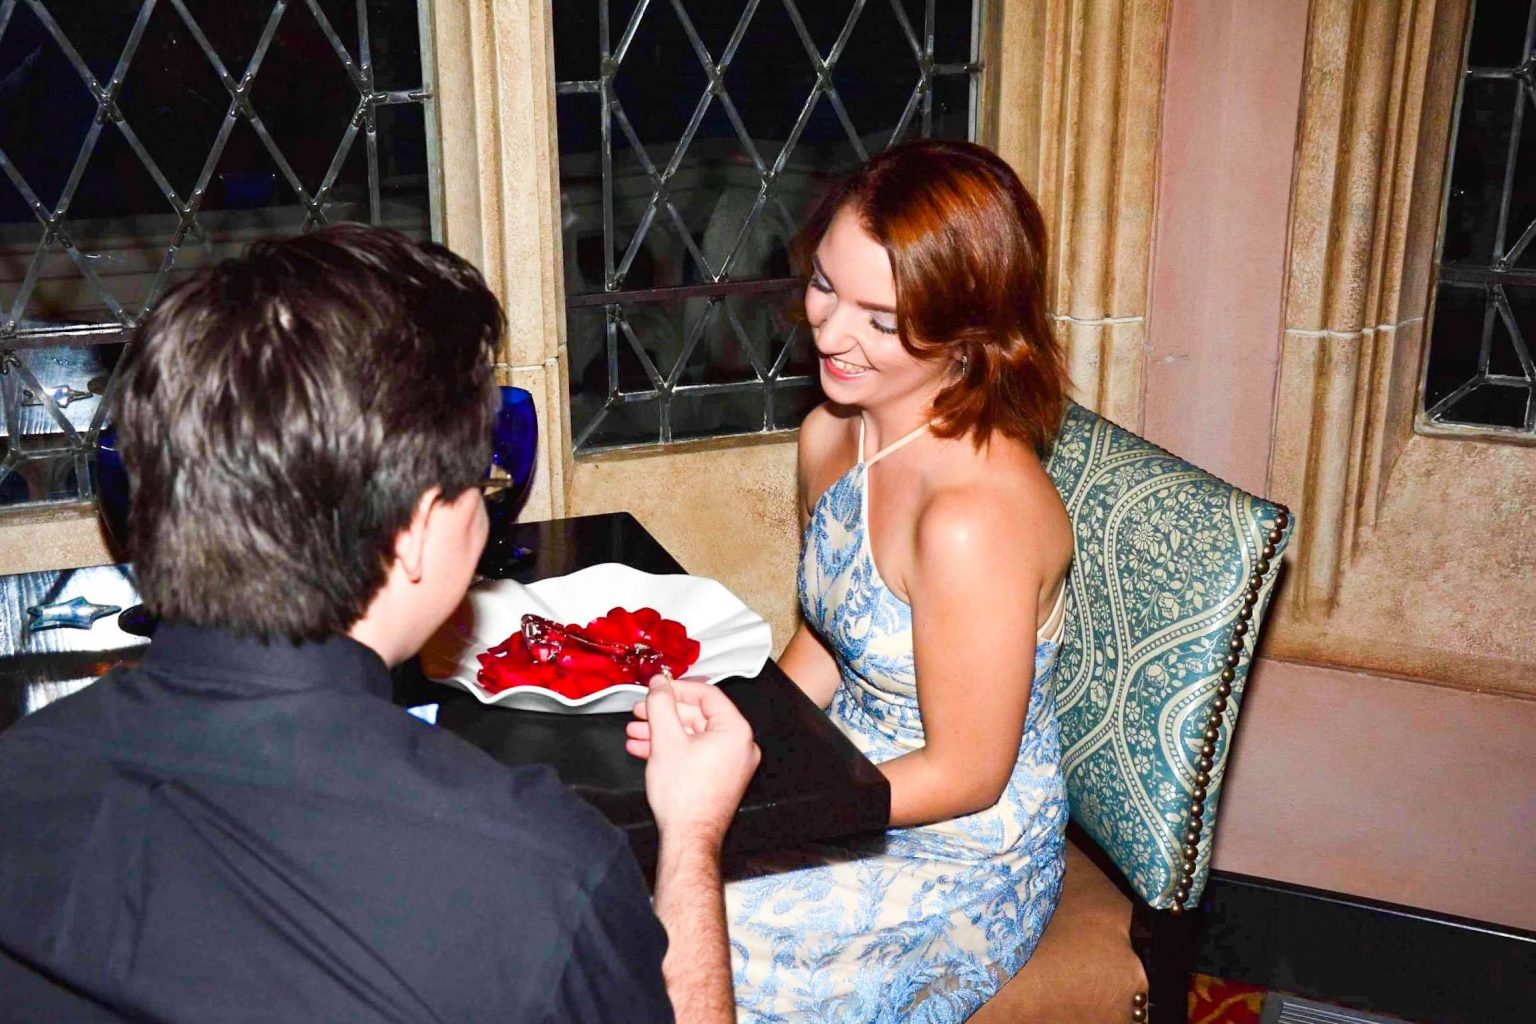 Proposal inside Cinderella's Royal Table in Magic Kingdom